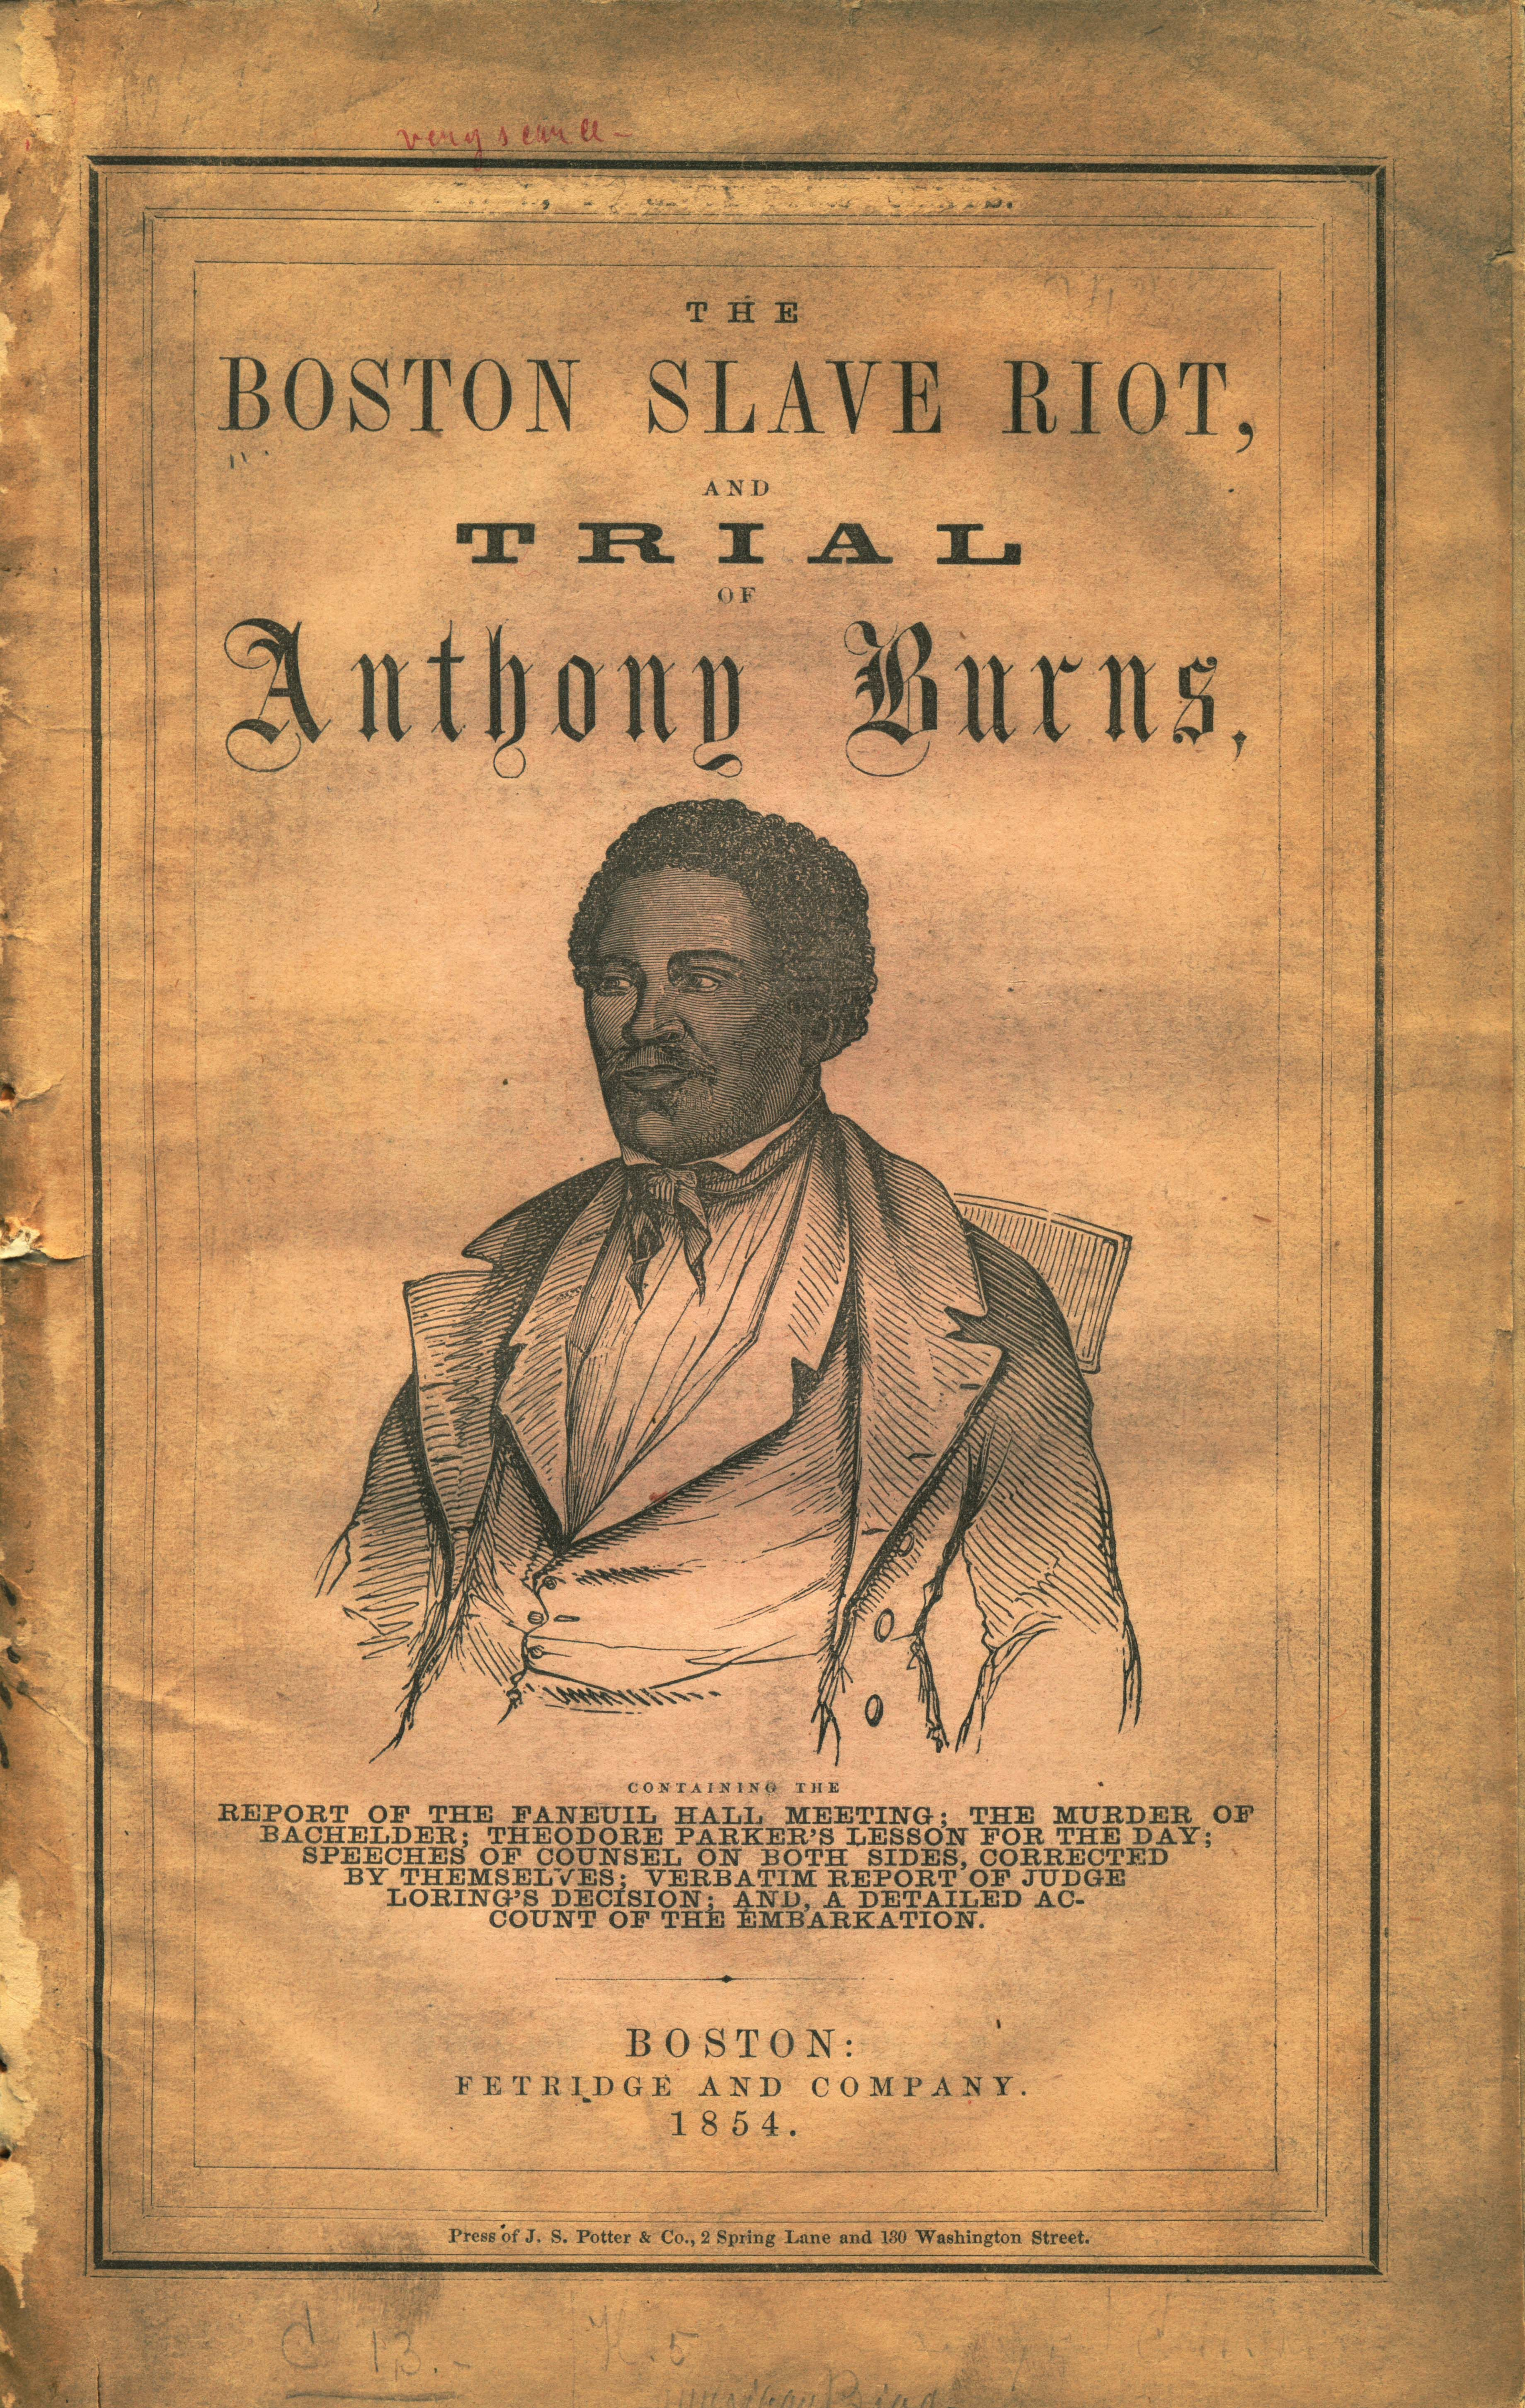 003 Slavery and Abolition in the U.S. Select Publications of